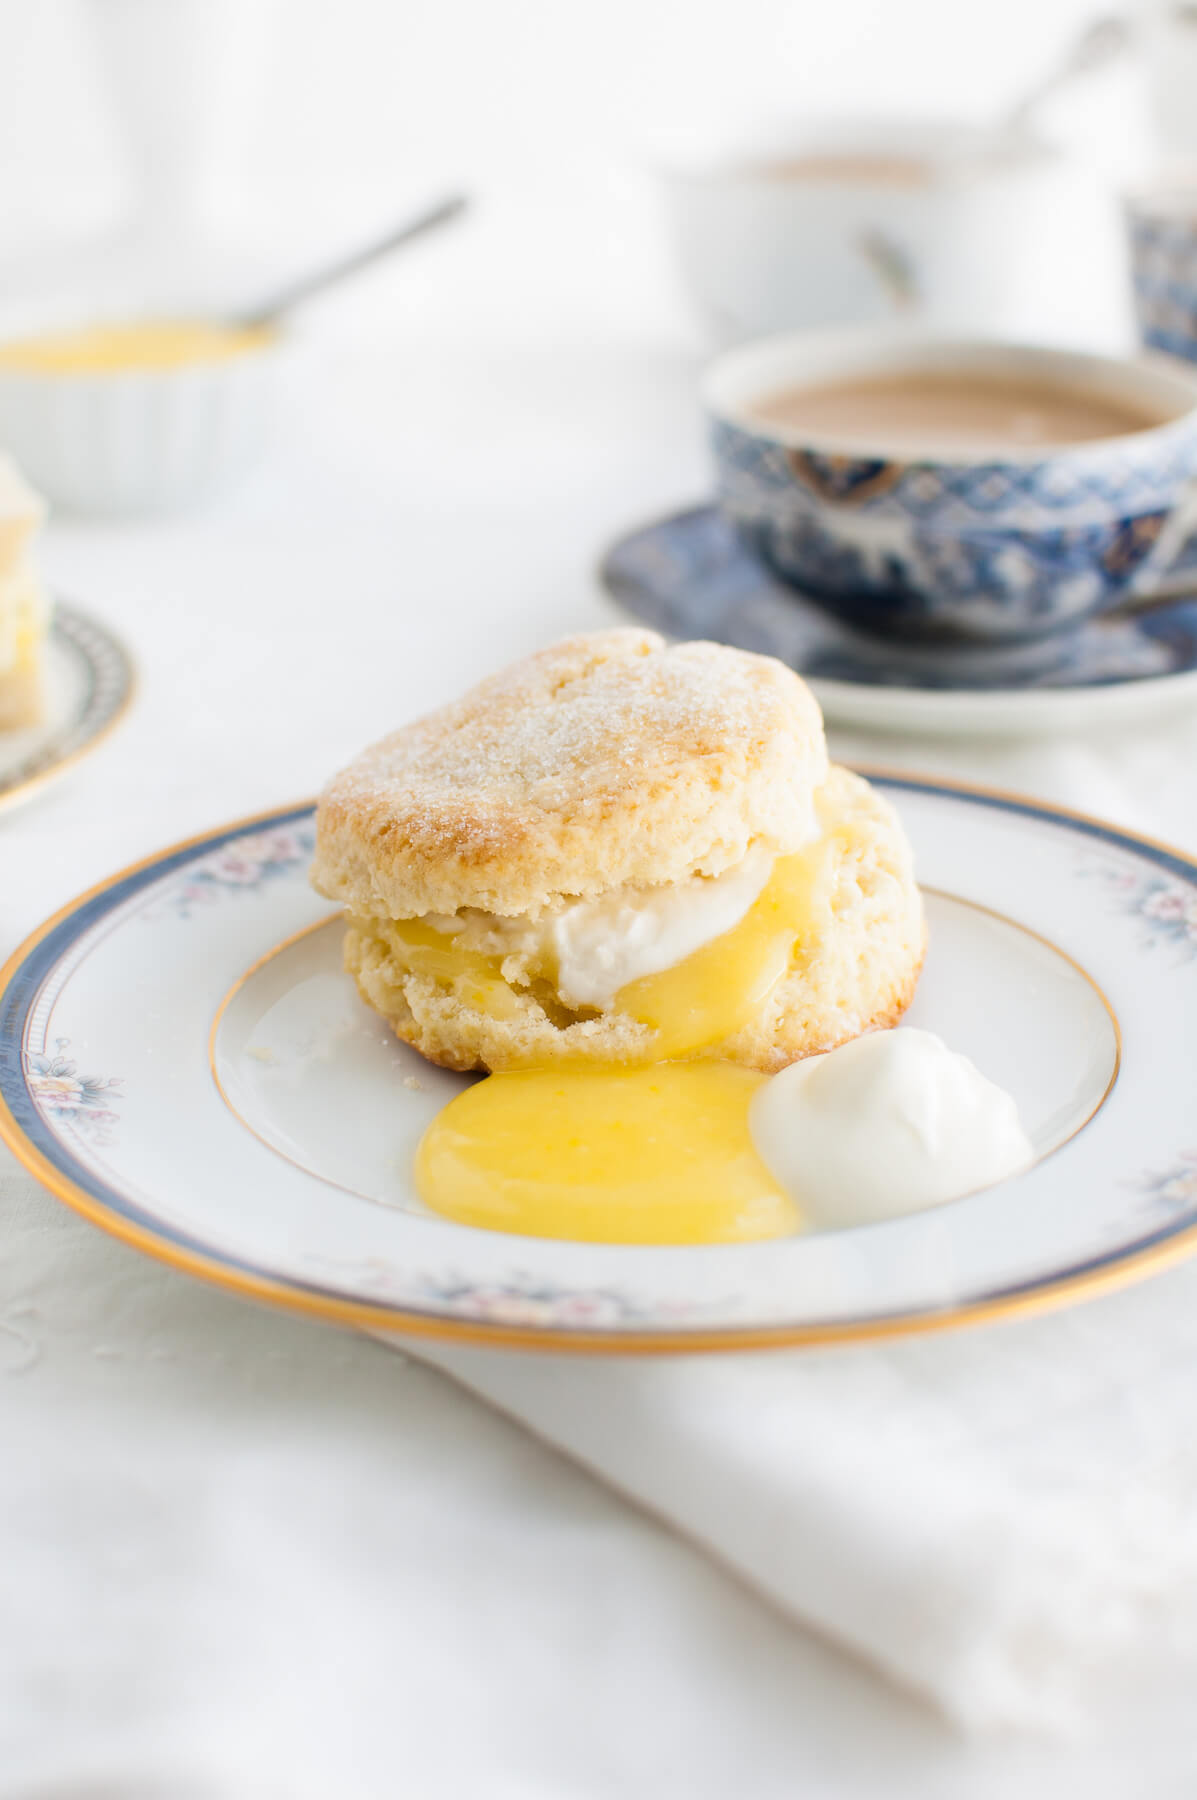 Cream scone, lemon curd, and whipped cream on a china plate